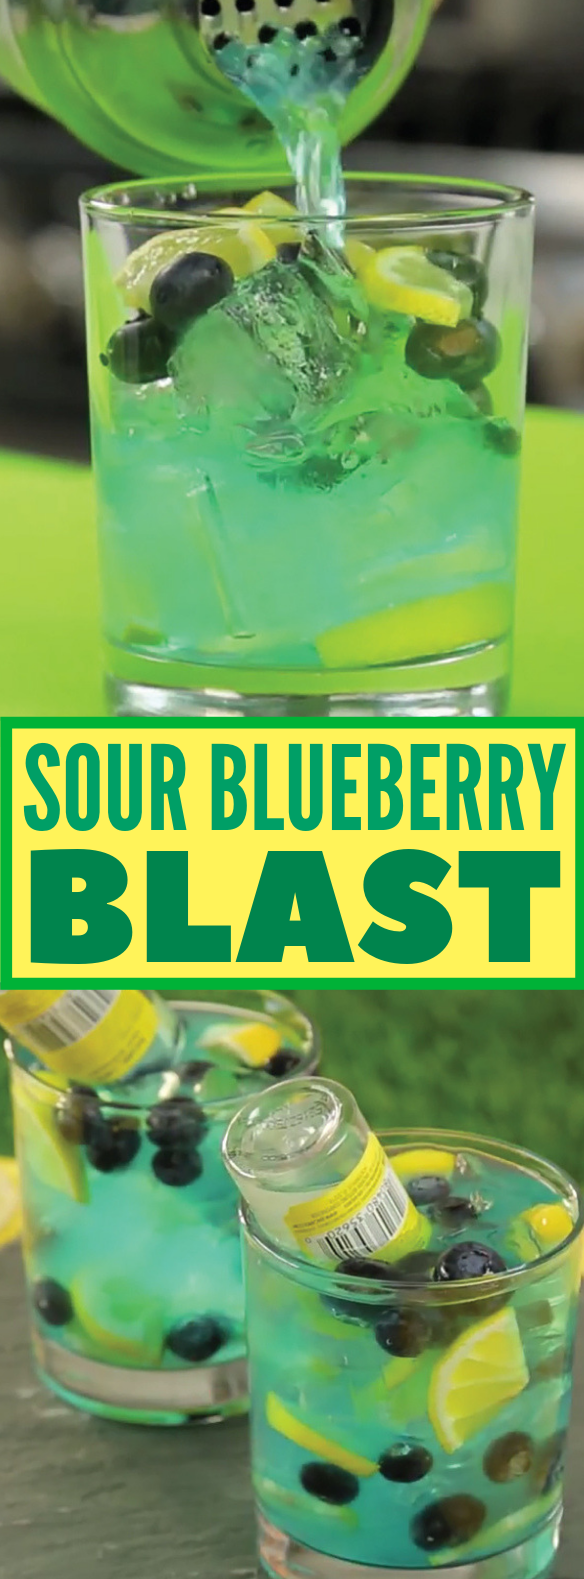 This Sour Blueberry Blast Packs A Real Pucker Punch #drinks #cocktails